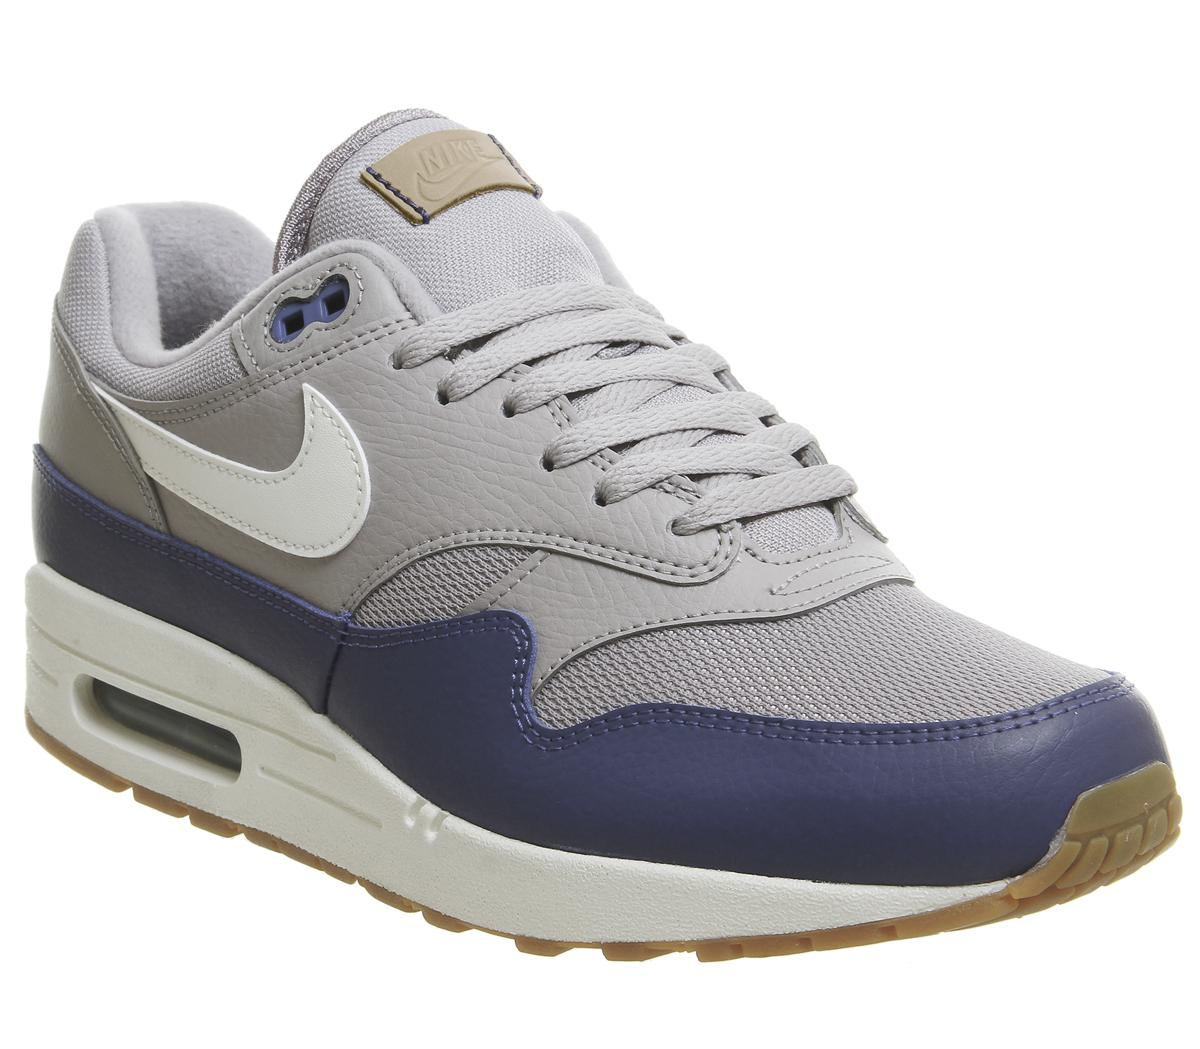 337f30dbb0aa ... ireland lyst nike air max 1 trainers in gray for men 292c7 accb7